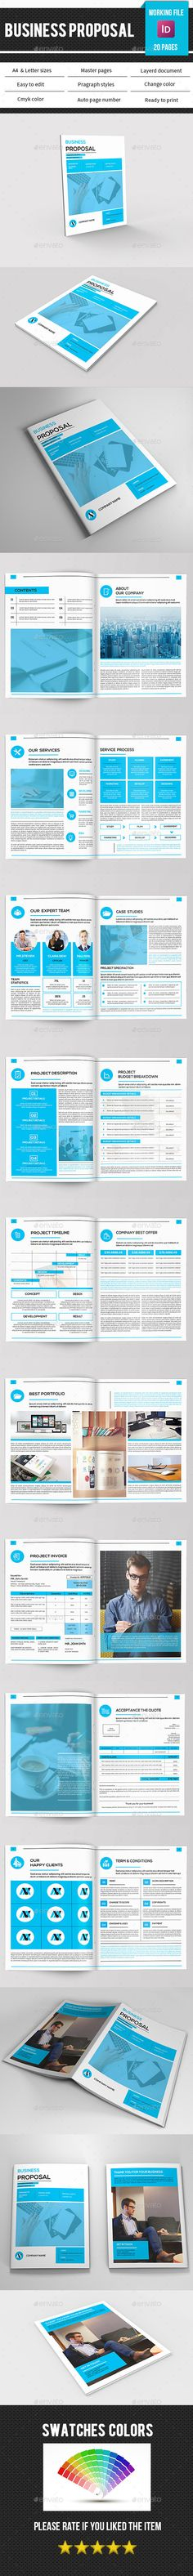 Web Proposal Project Template #proposal #proposaltemplate - business proposals templates